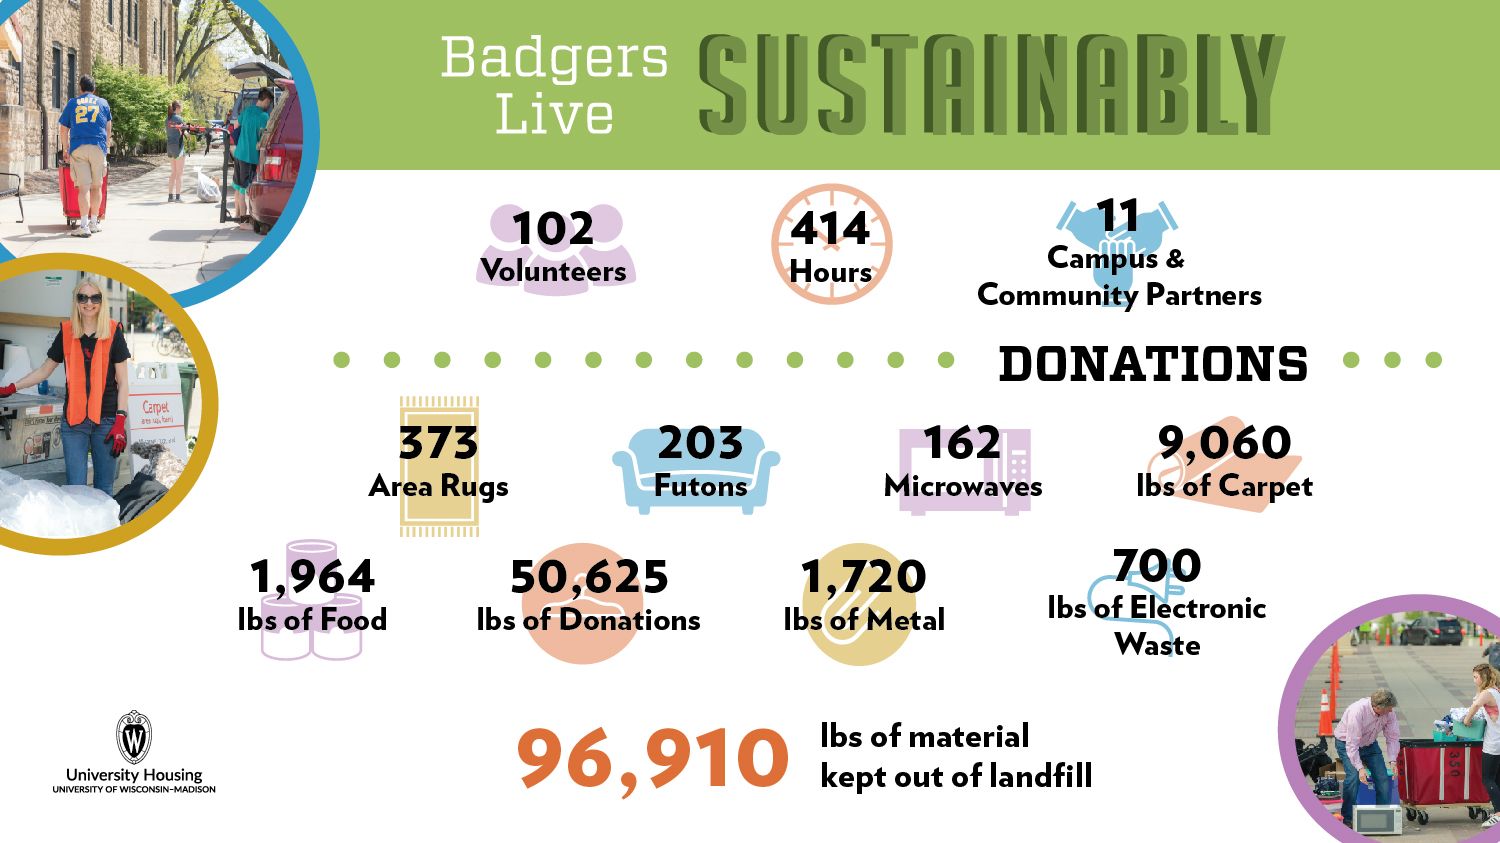 Infographic showing the impact of sustainability